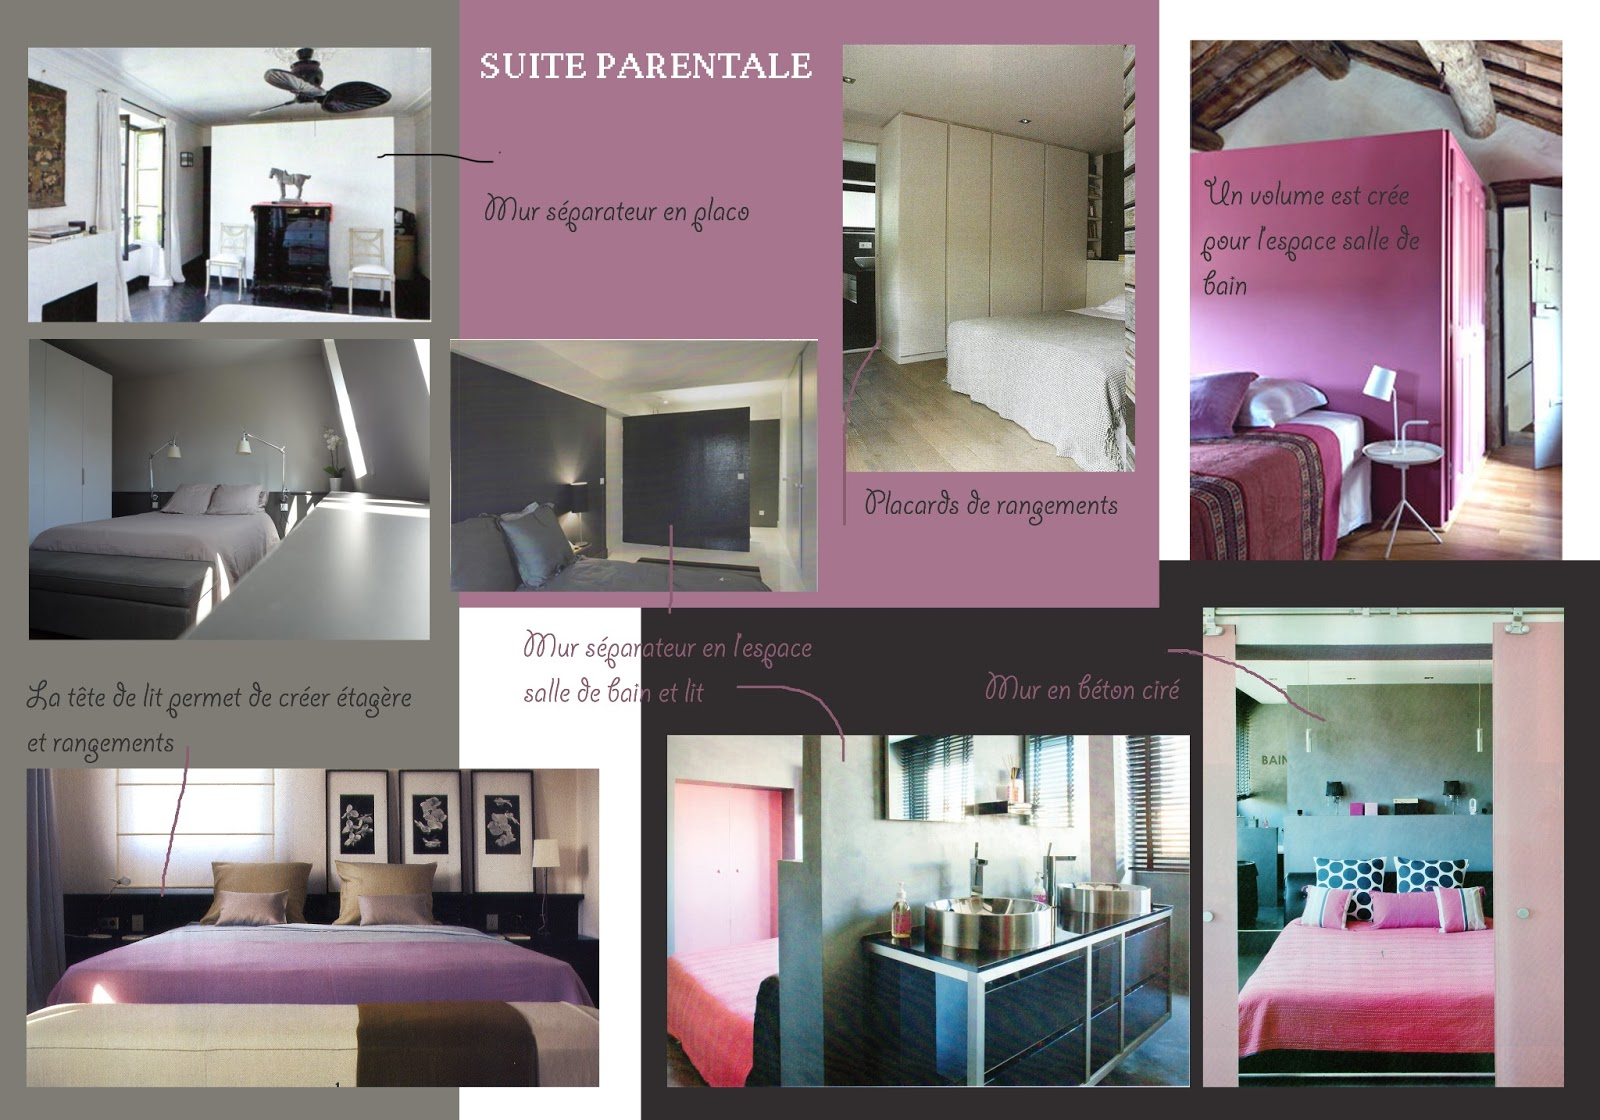 perrine balleux le blog suite parentale mode d 39 emploi. Black Bedroom Furniture Sets. Home Design Ideas